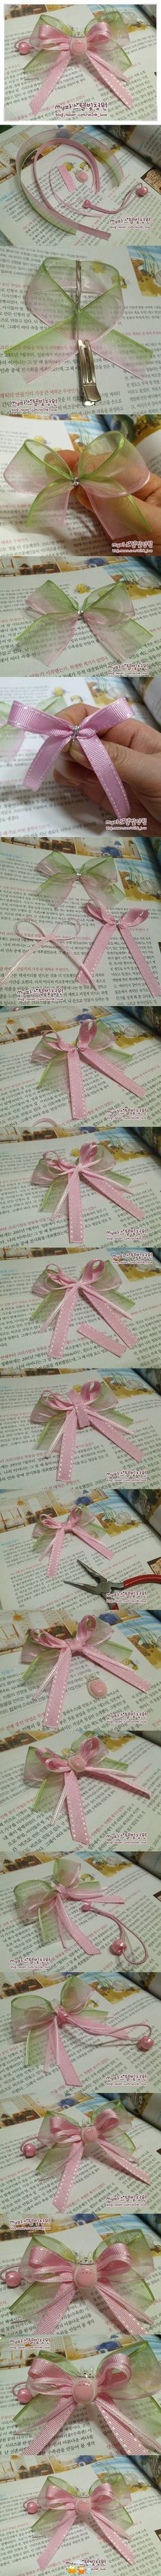 layered sheer ribbon bow for hair accessory, or just add the bow to a project